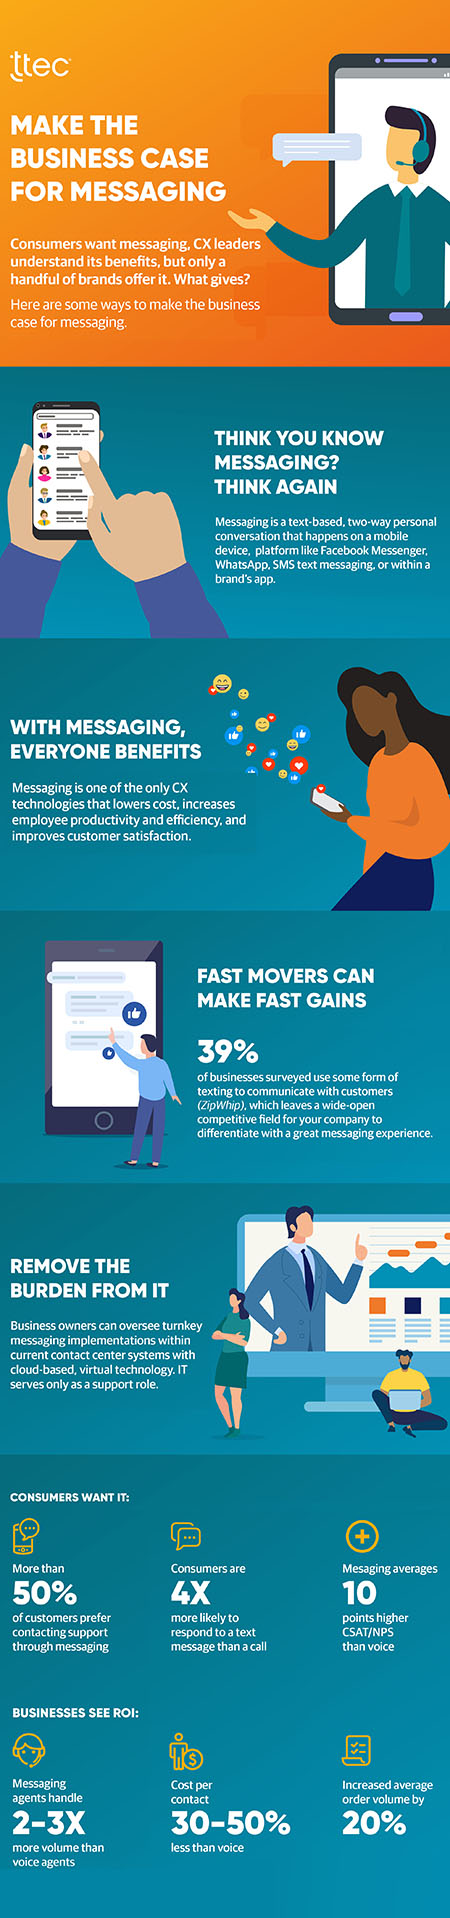 infographic showing the benefits of conversational messaing for improving operational KPIs